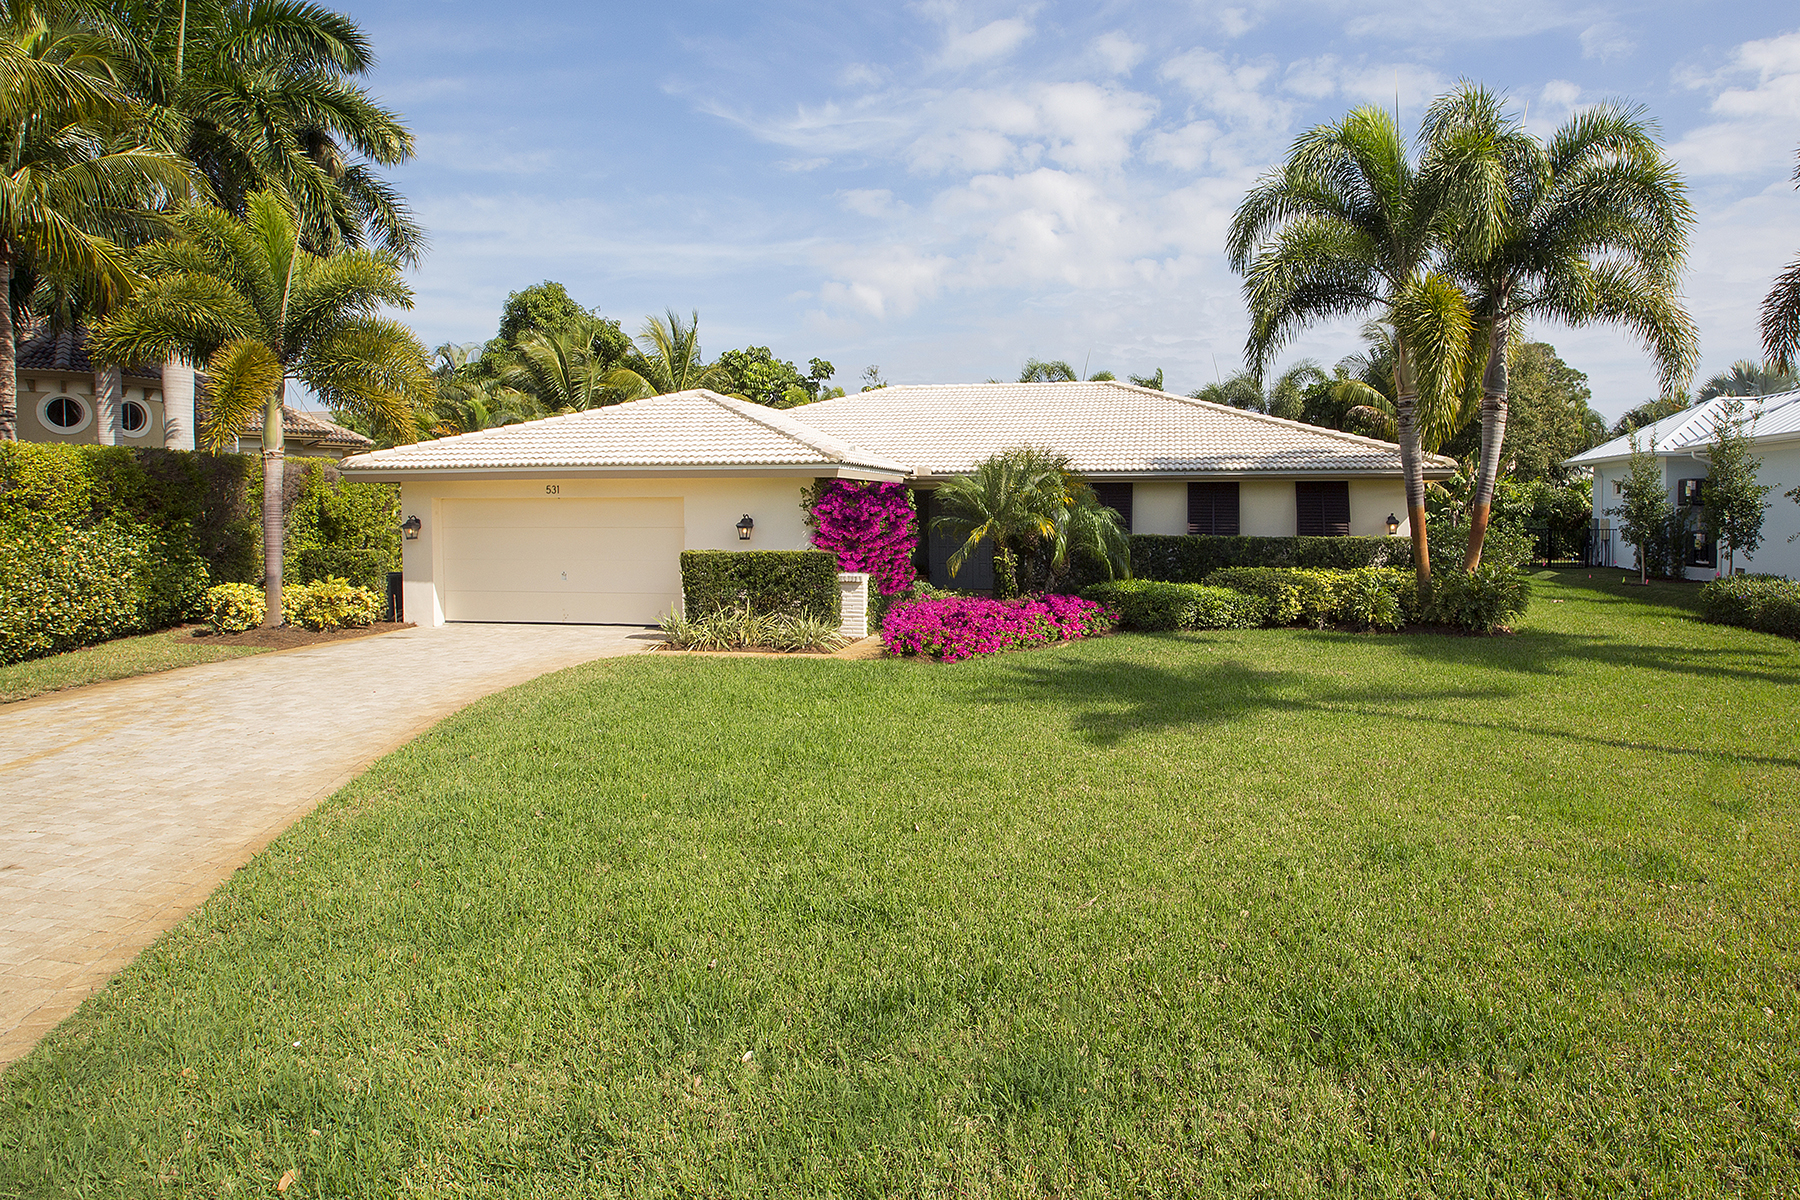 Single Family Home for Sale at PARK SHORE 531 Turtle Hatch Ln Naples, Florida, 34103 United States